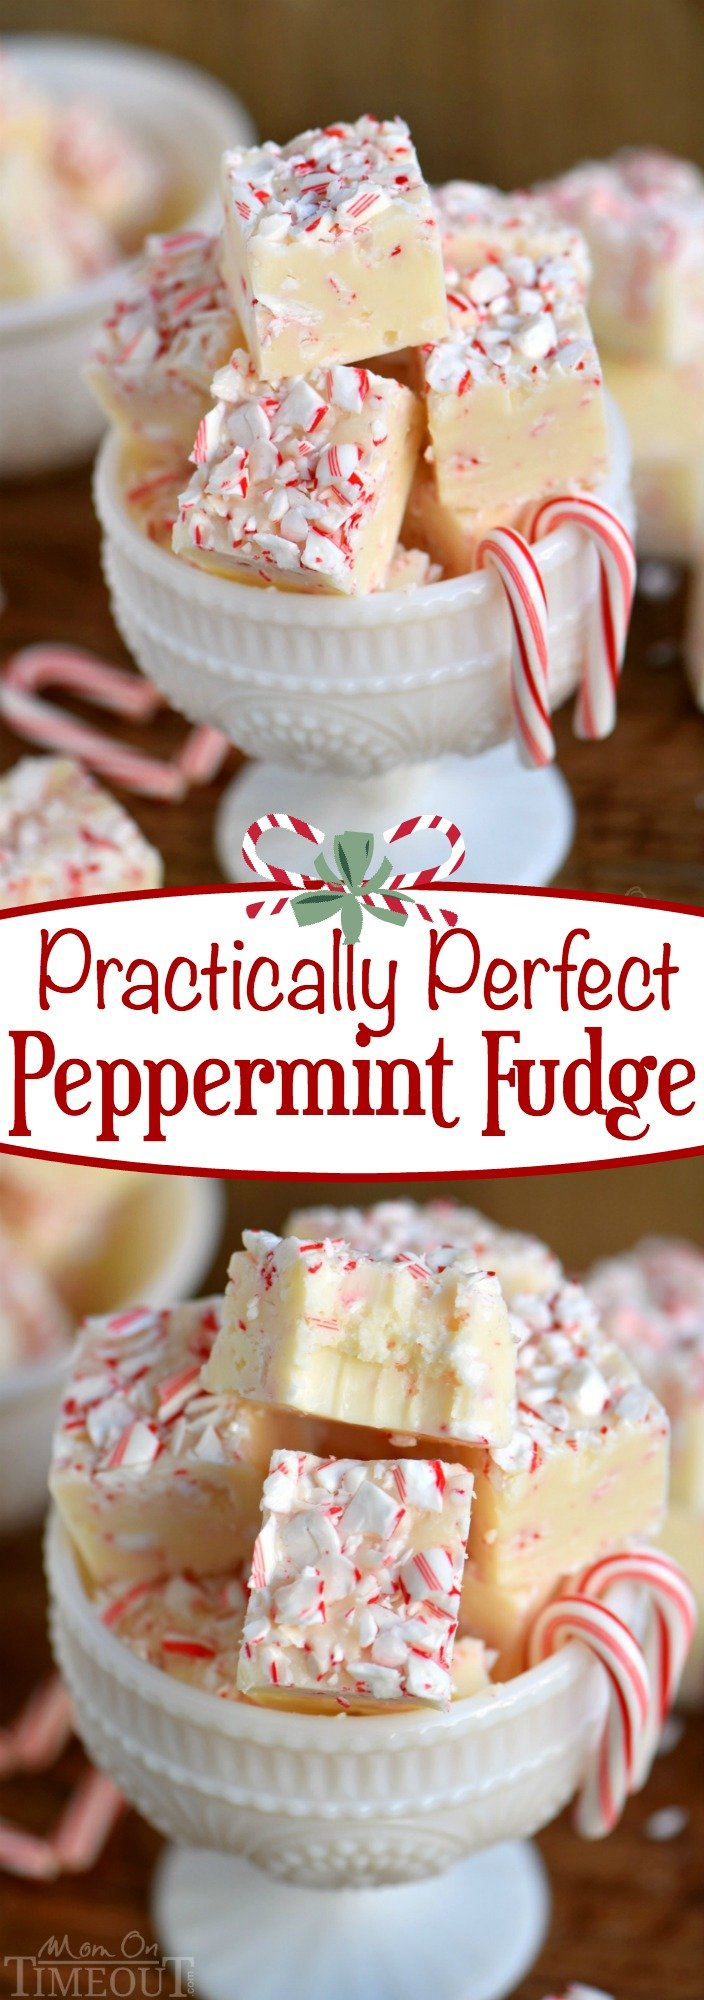 peppermint-fudge-recipe-collage